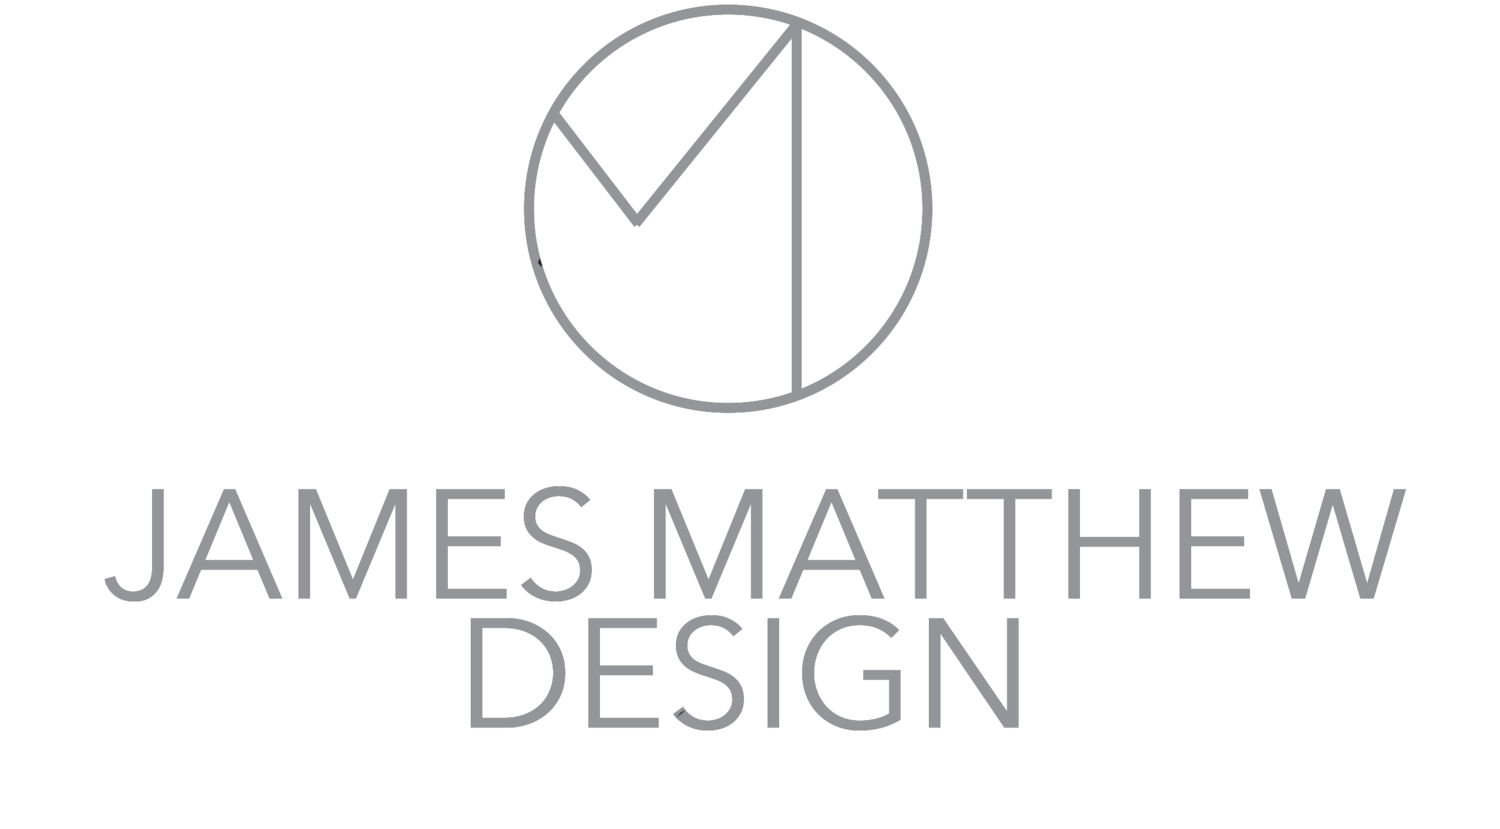 James Matthew Design